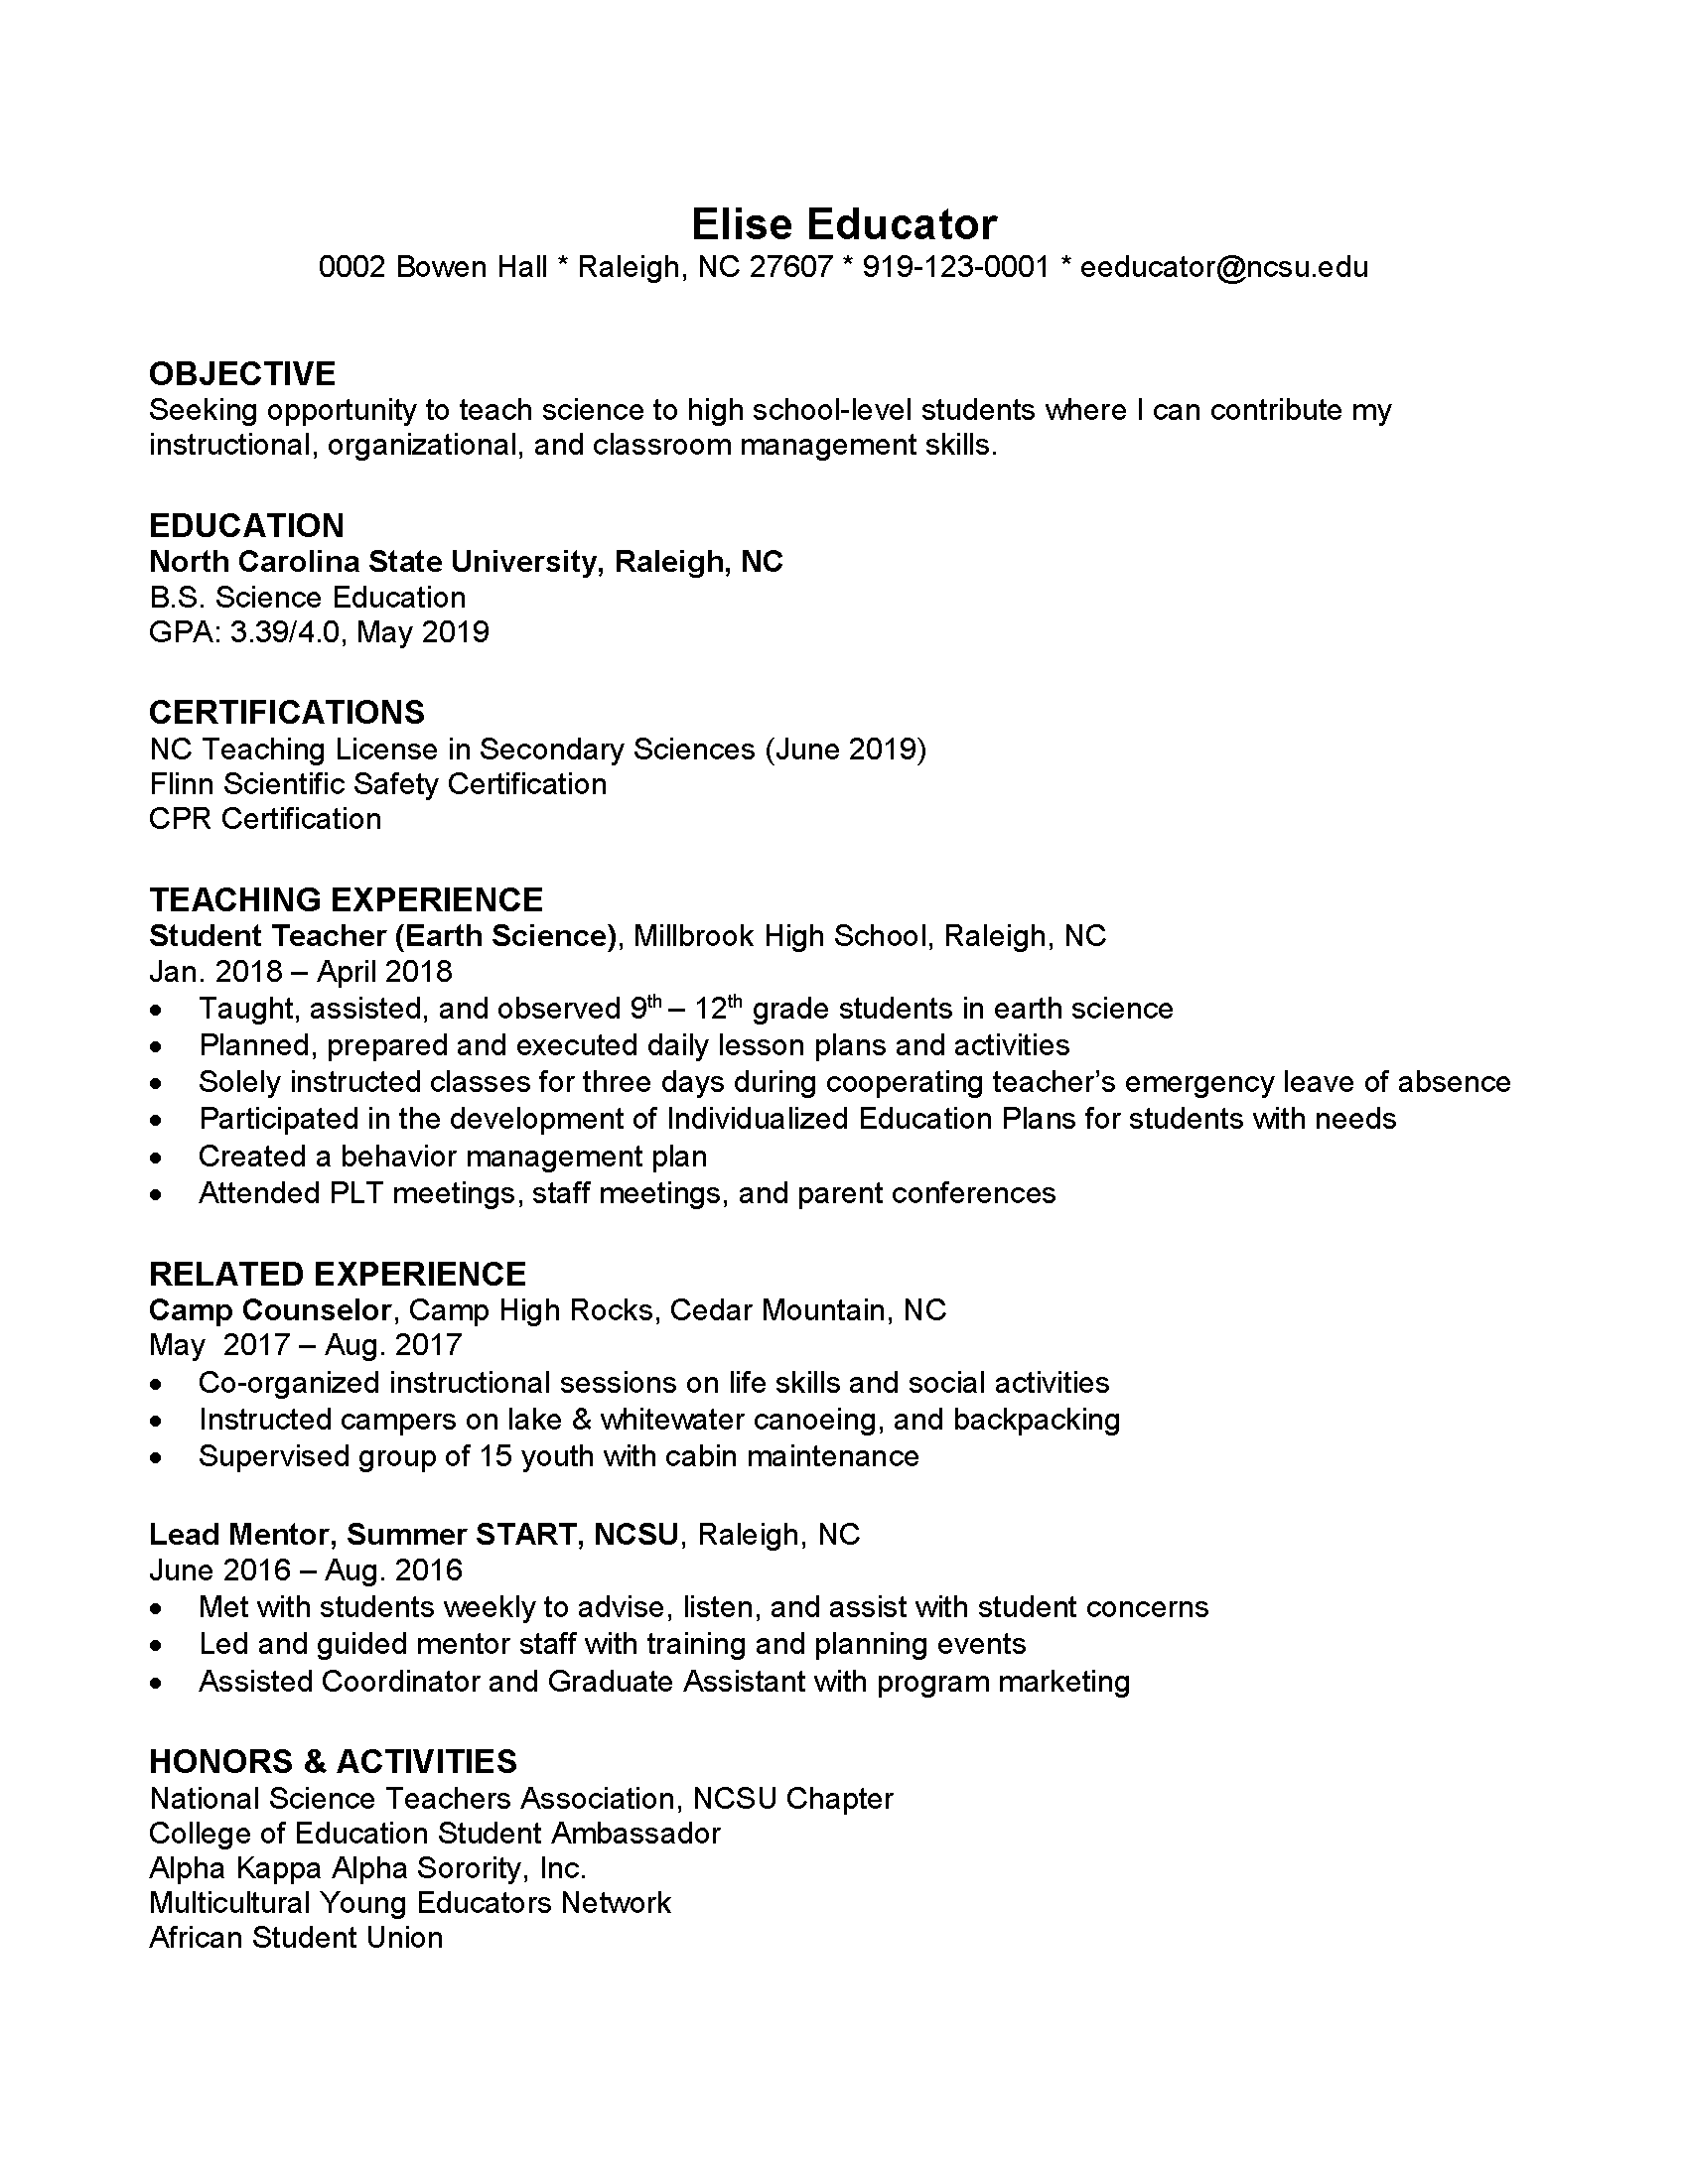 michigan student driving experience log example